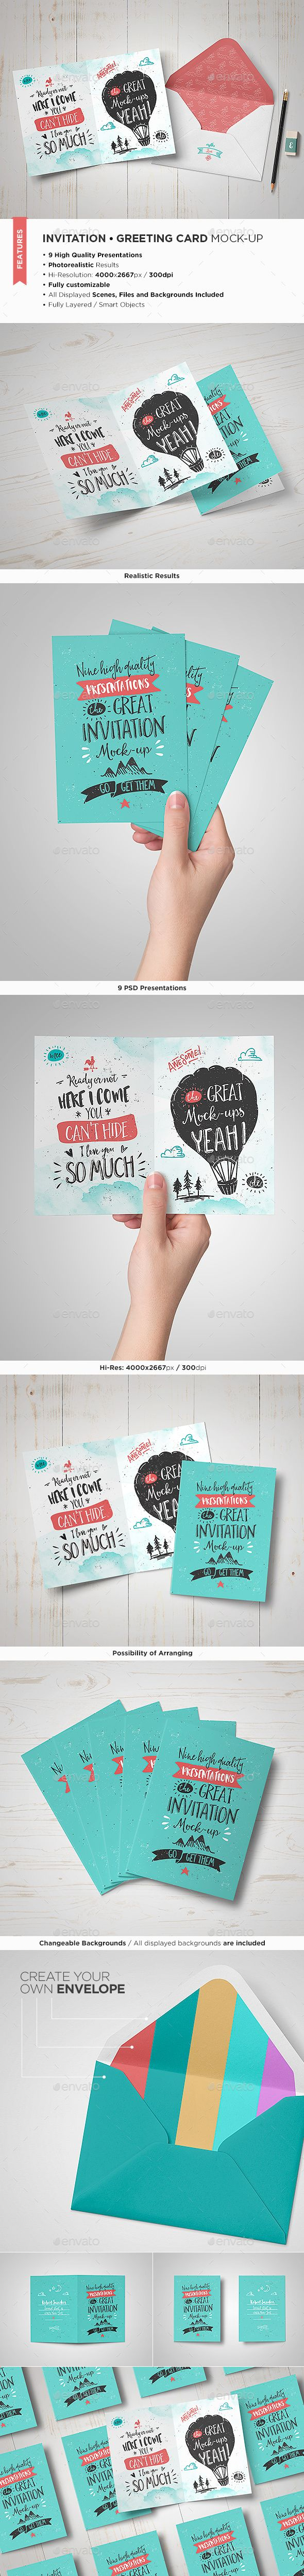 Invitation / Greeting Card Mock-Up #design Download: http://graphicriver.net/item/invitation-greeting-card-mockup/13067421?ref=ksioks